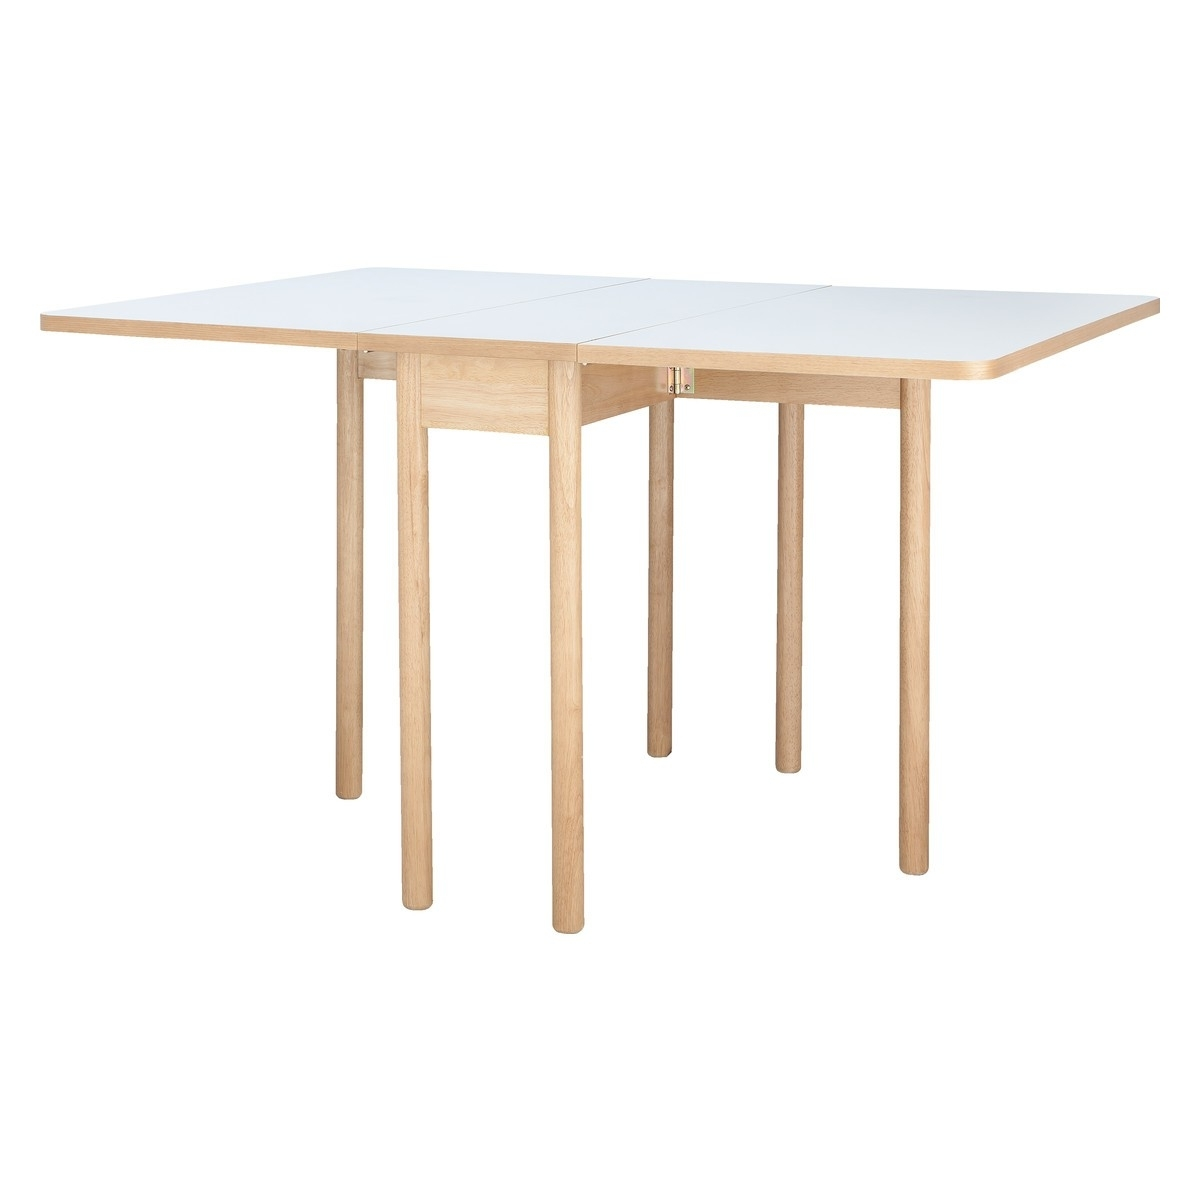 Most Recently Released 6 Seat Dining Tables Throughout Suki 2 6 Seat White Folding Dining Table (View 11 of 25)